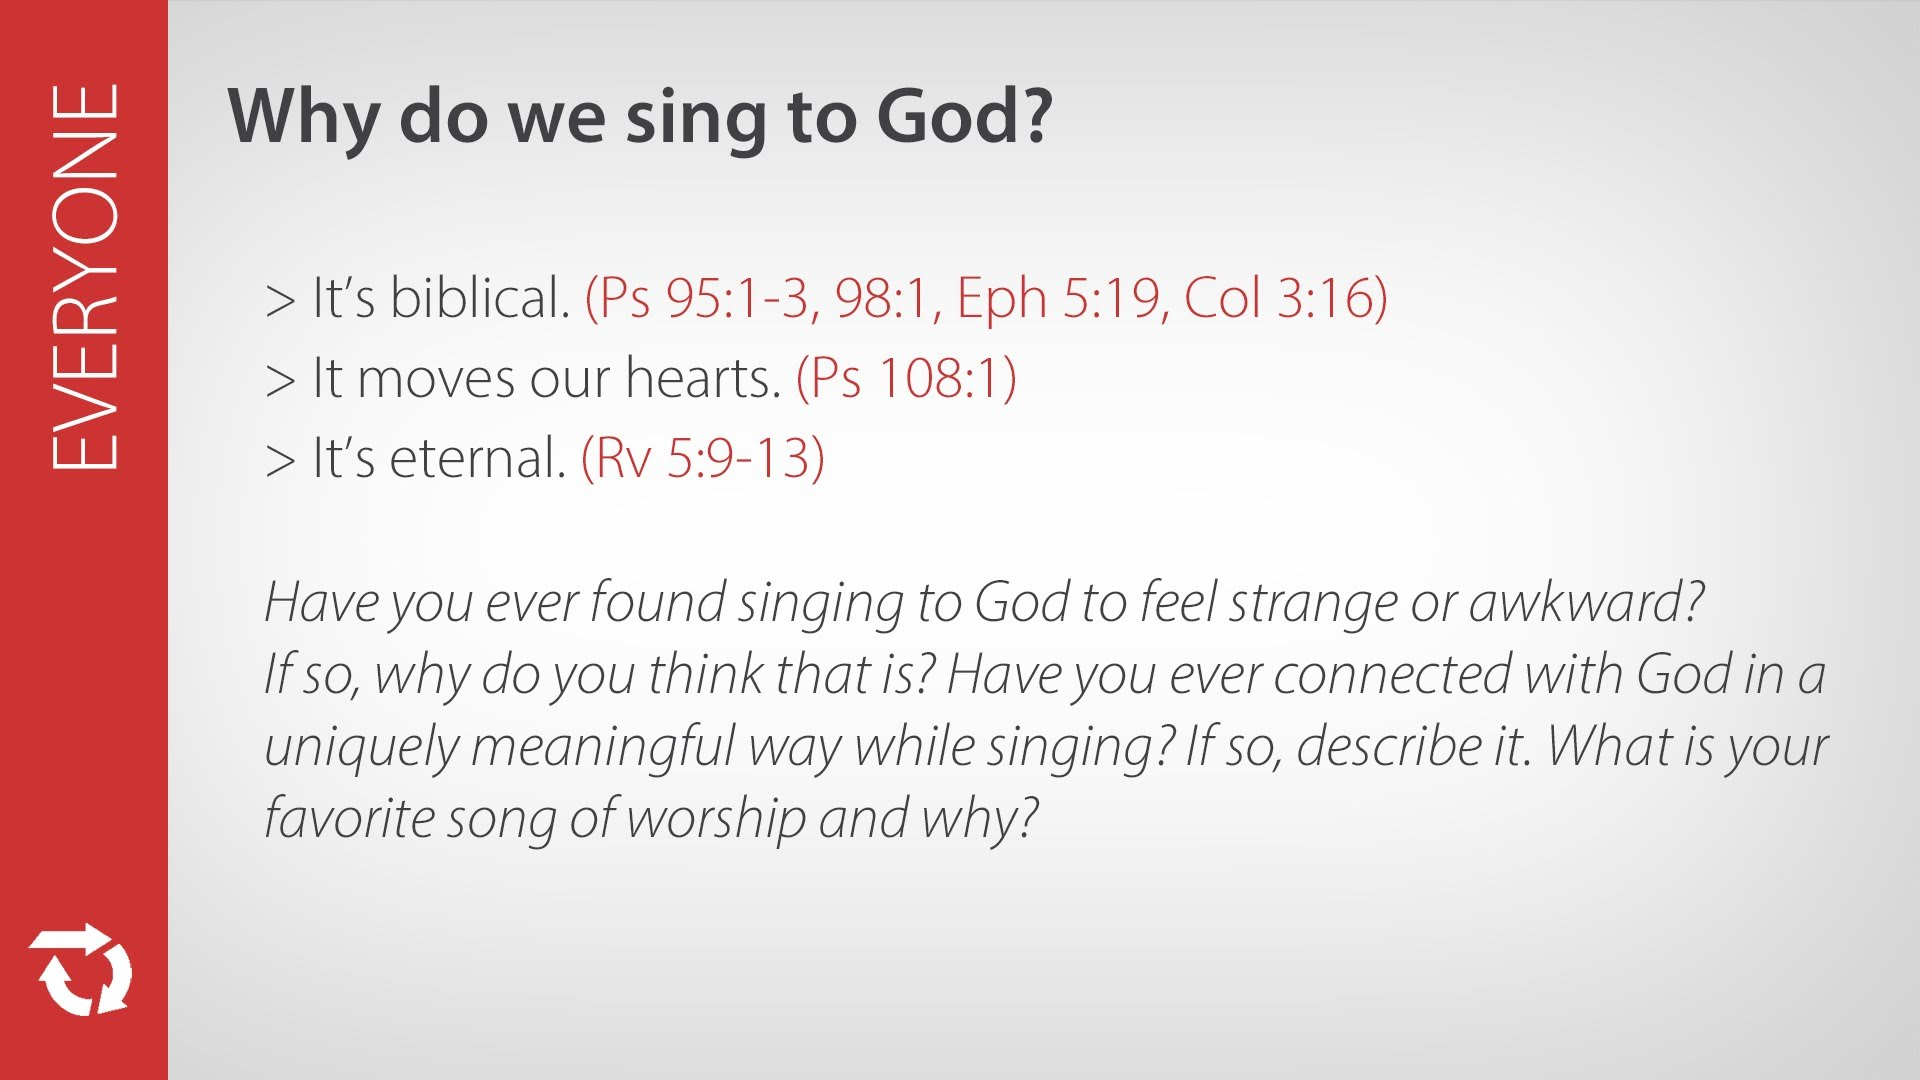 Why do we sing to God?